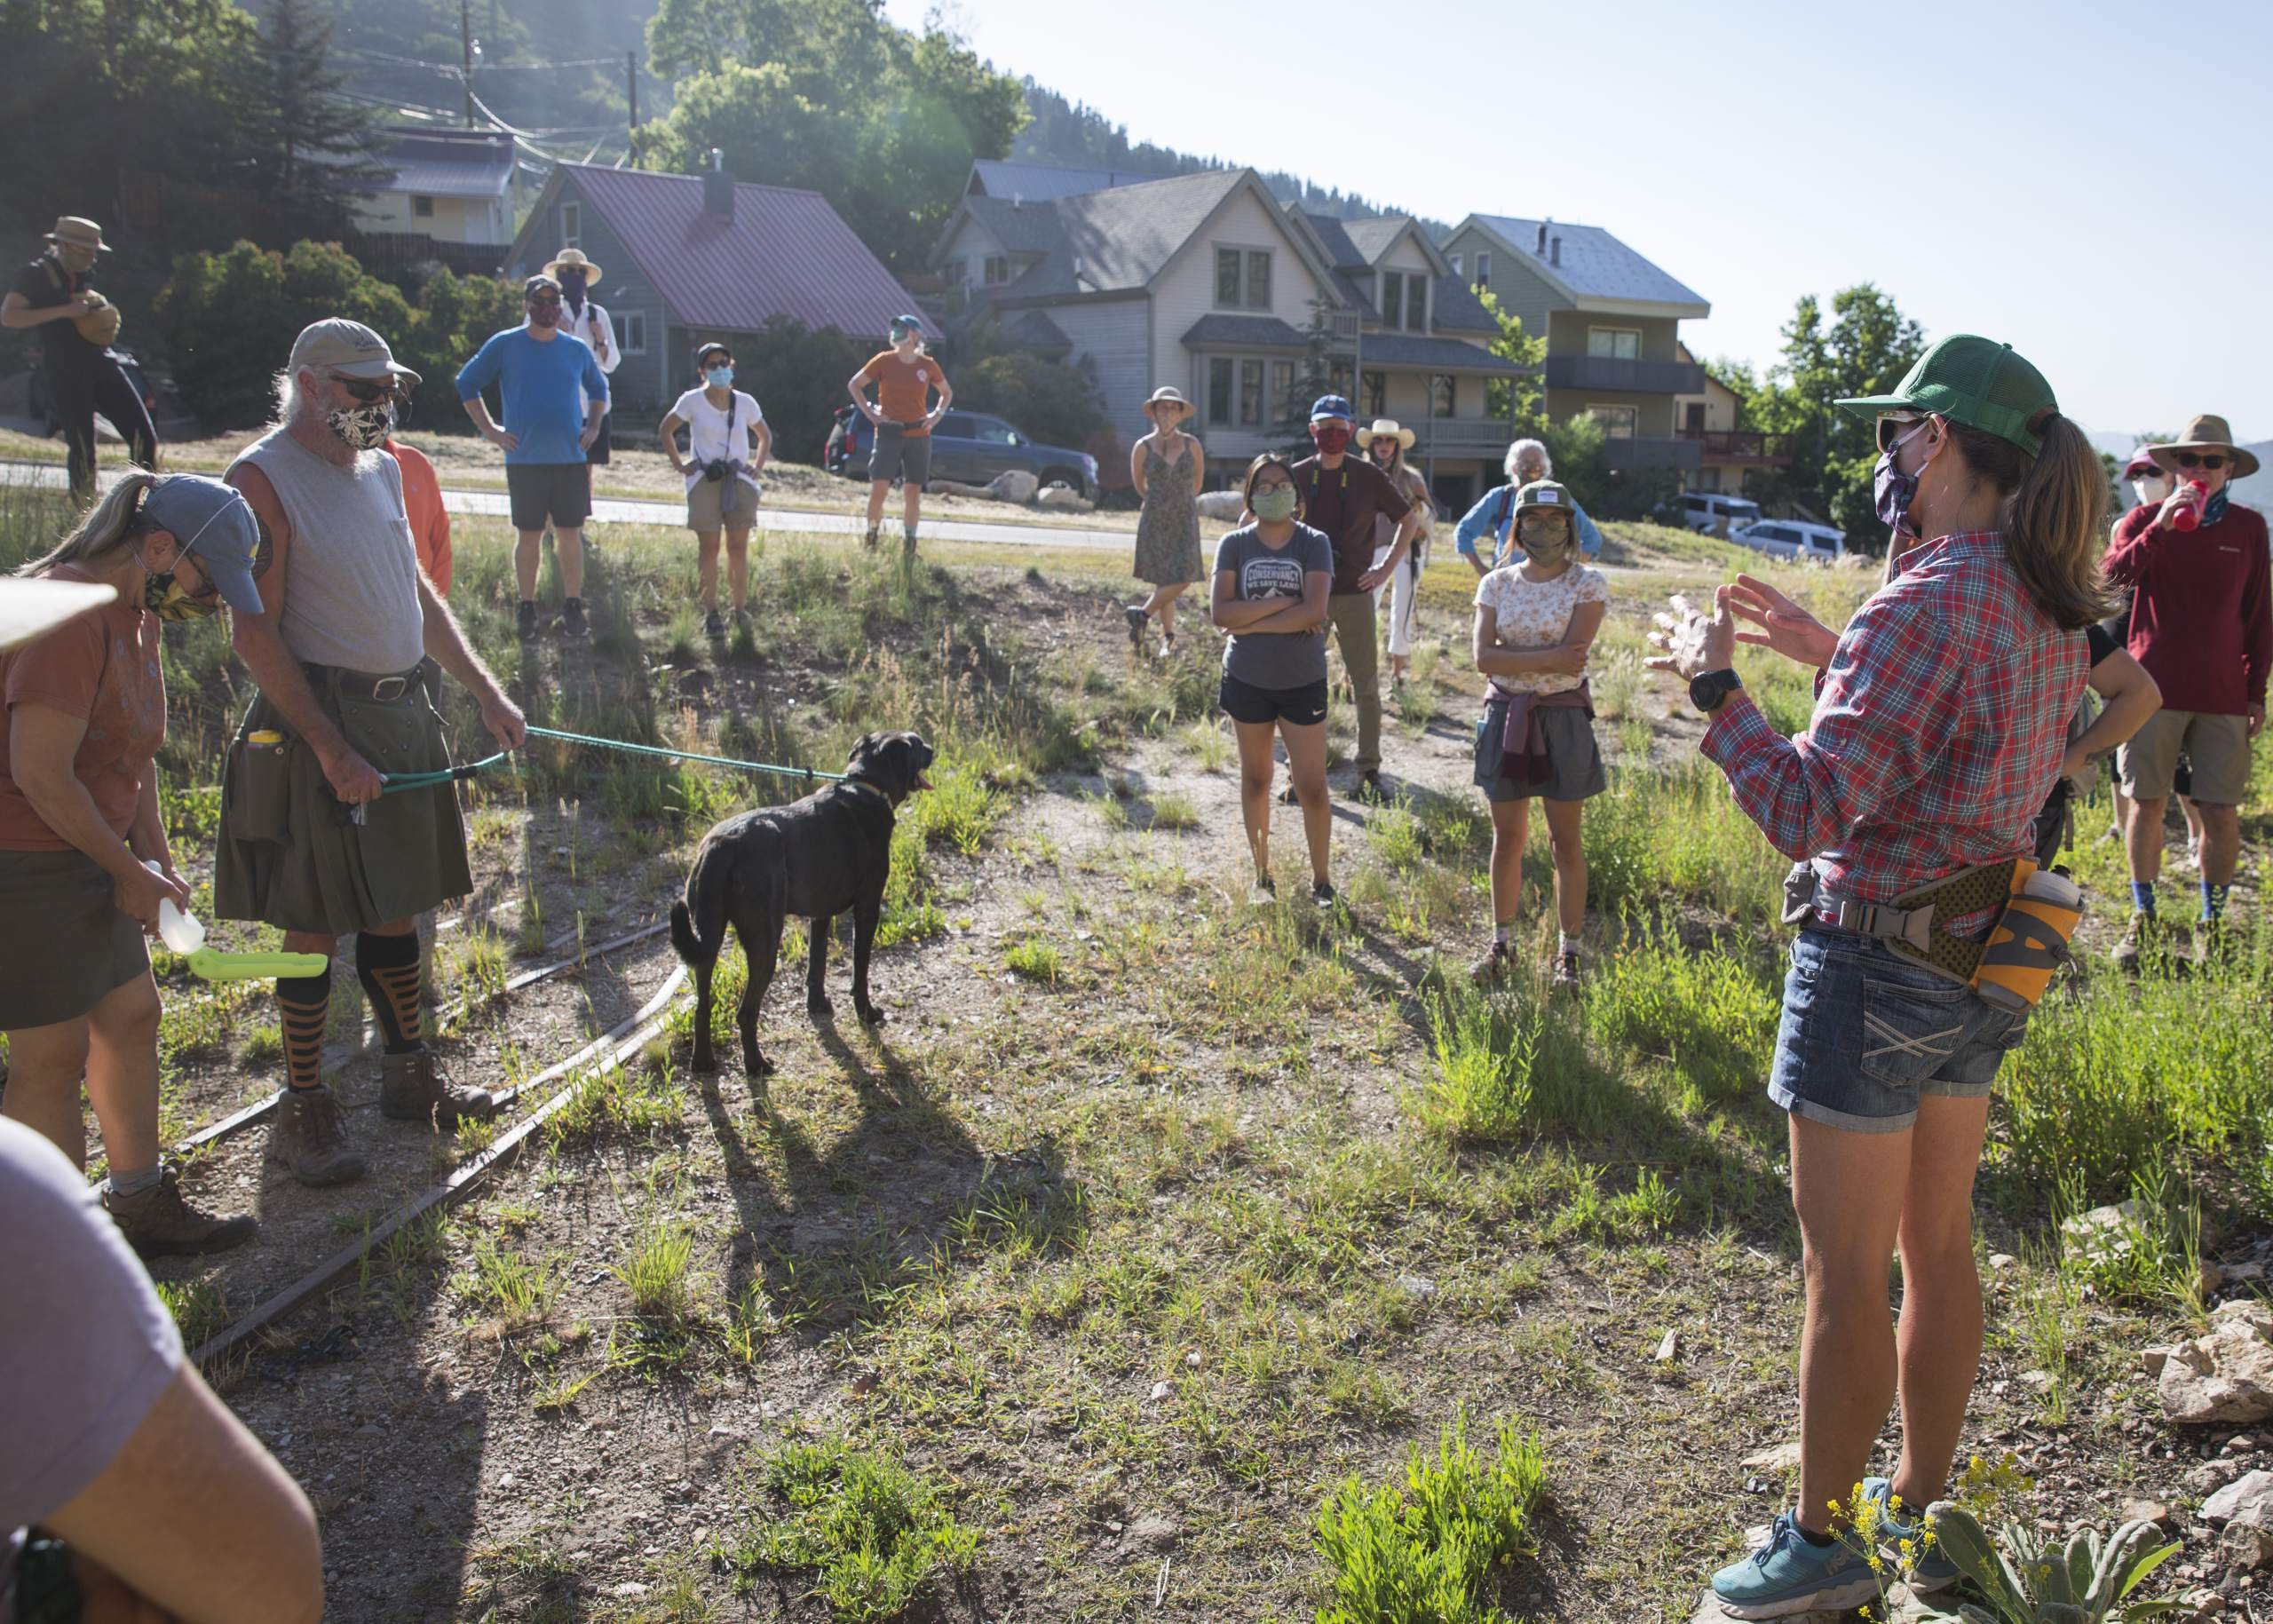 Hops hunters head to the hills around Park City